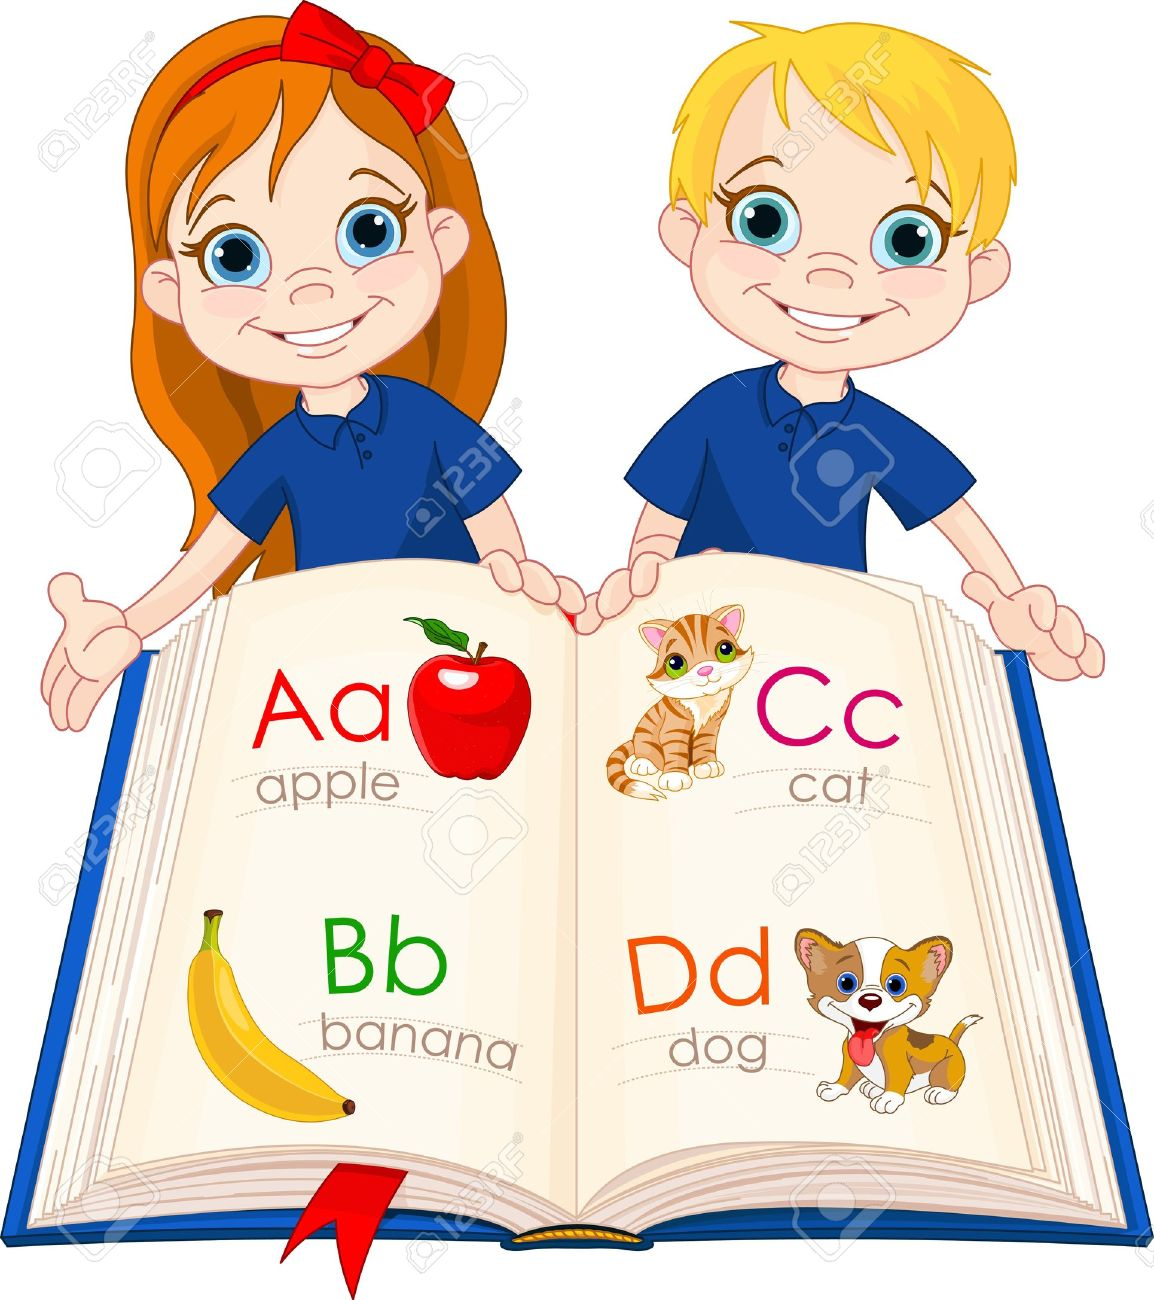 Abc clipart for kids clip art free download English clipart for kids - ClipartFest clip art free download